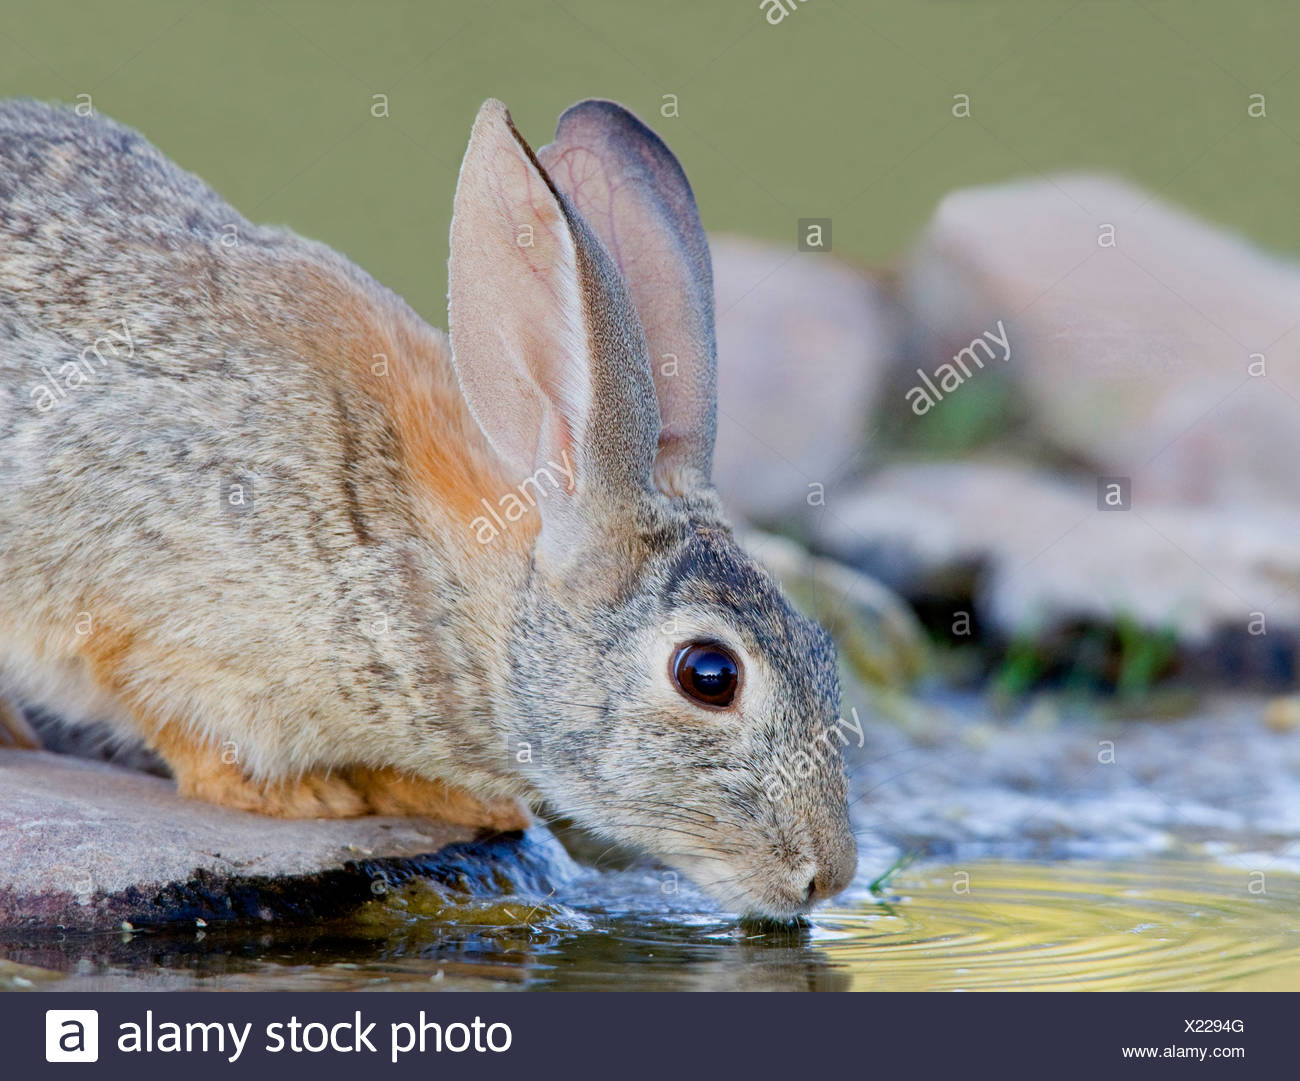 Rabbit (Oryctolagus cuniculus) drinking water from a pond Stock Photo